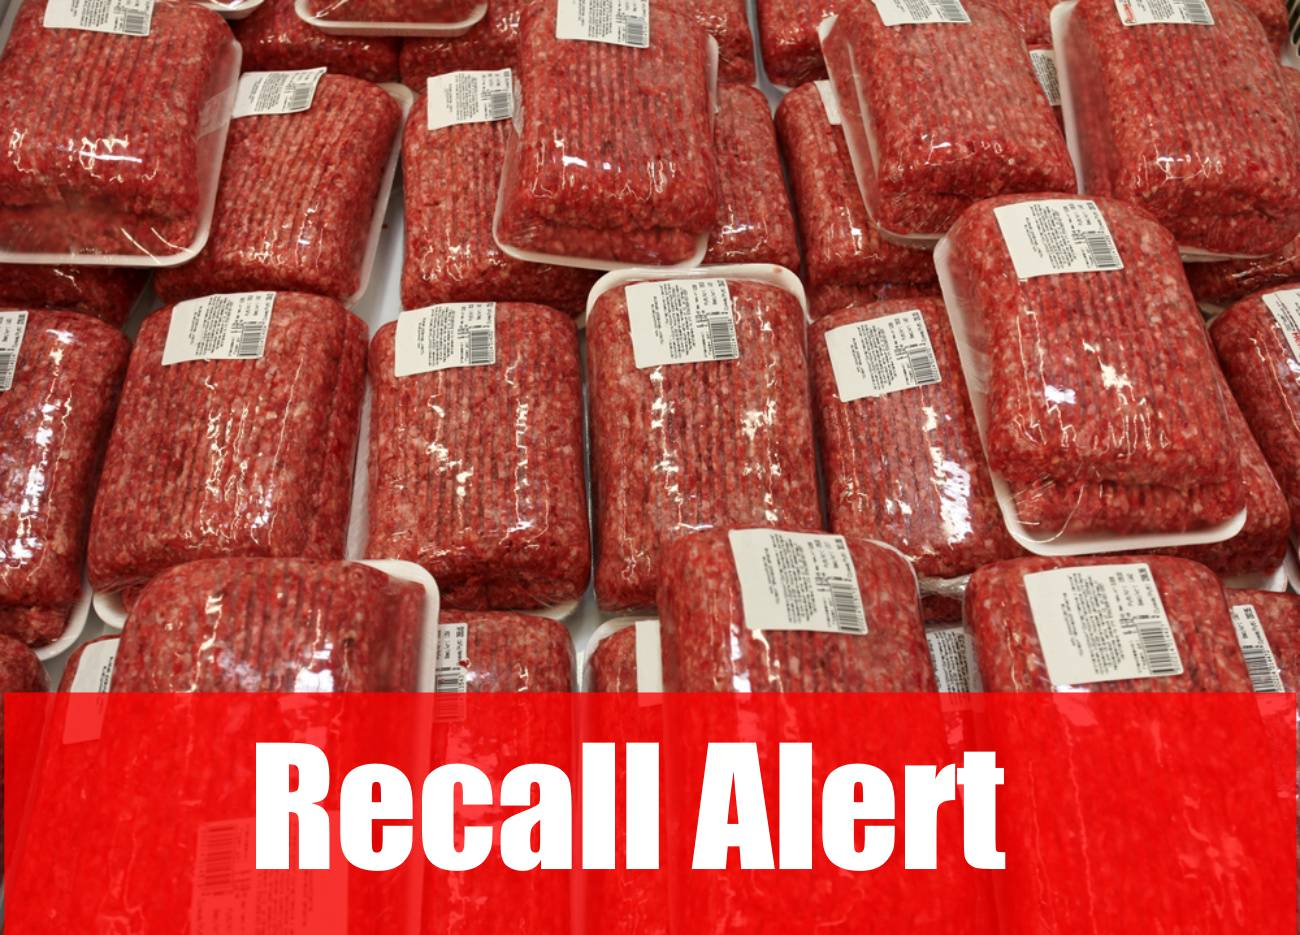 Cargill Beef Recall Expands